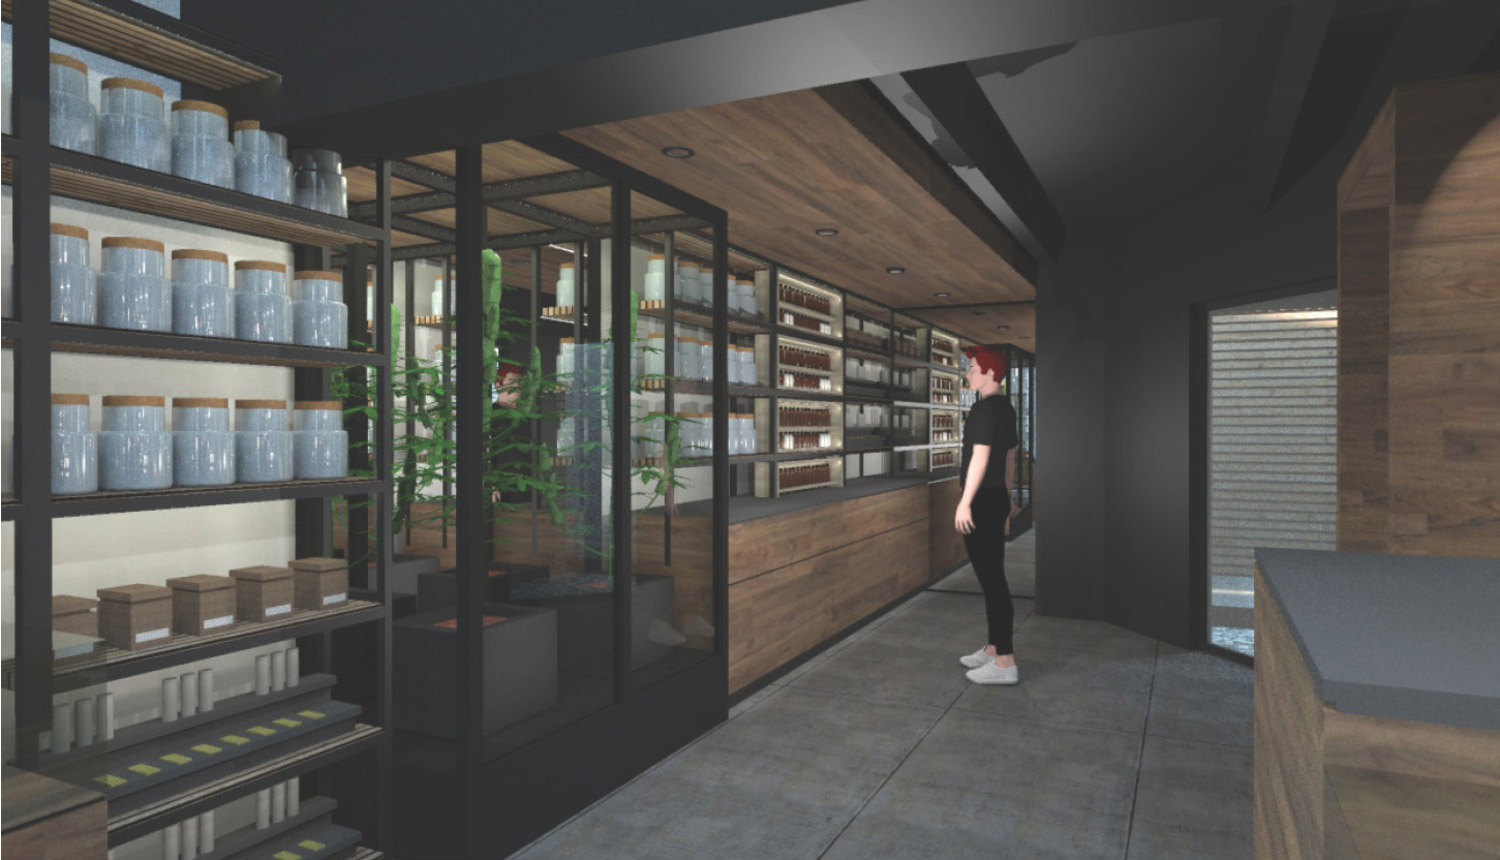 Modern cannabis dispensary design and retail experience. Customers interact with curated product displays and educational museum-quality exhibits. Cannabis plants are showcased in custom infinity mirror, experiential installations